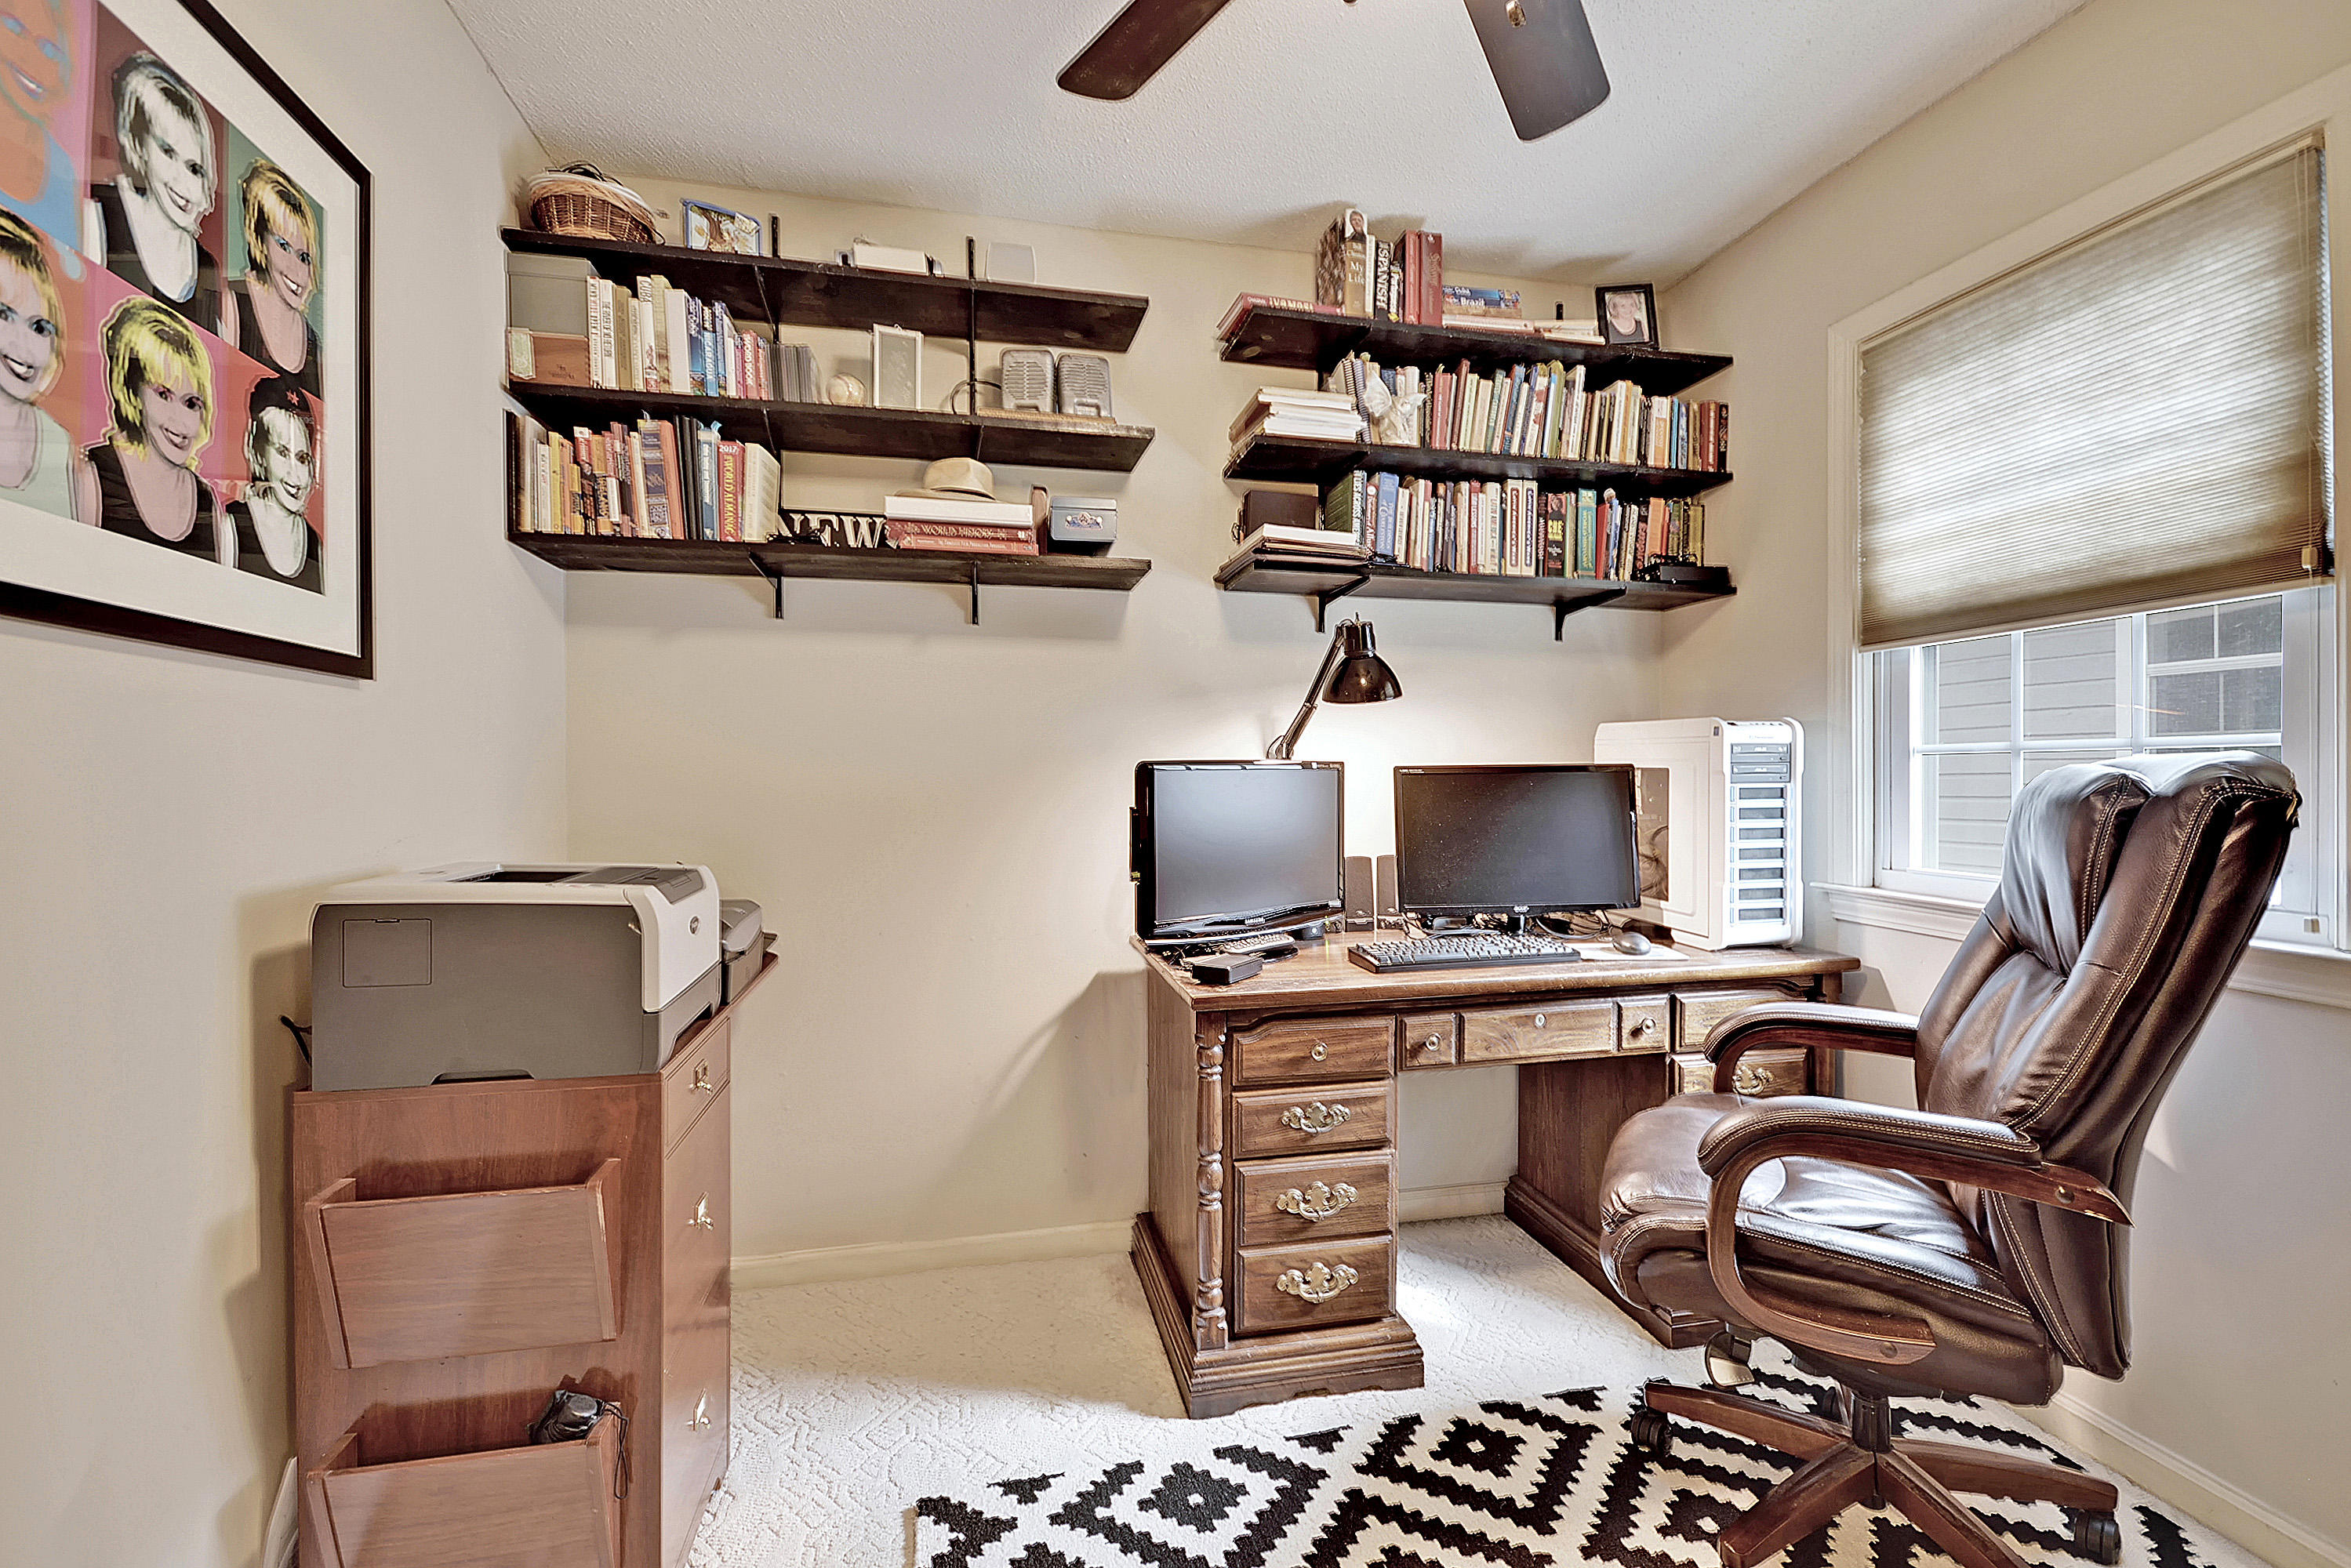 South of Broad Homes For Sale - 0 Rutledge, Charleston, SC - 32